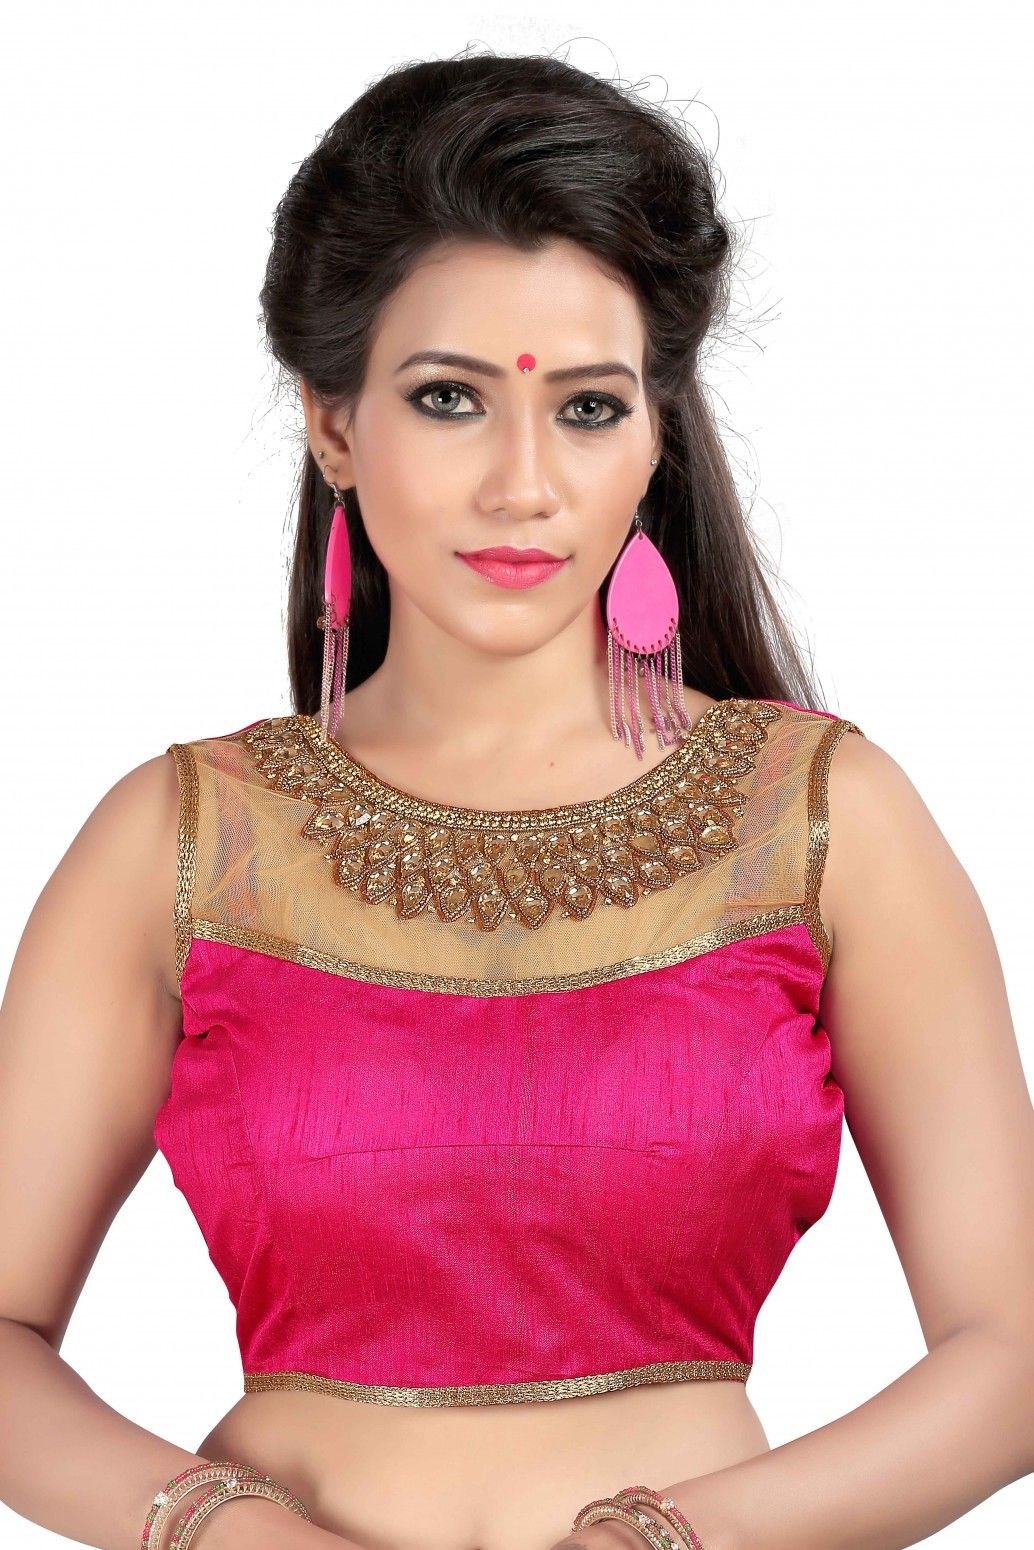 f60564963a Buy kuvarba fashion Pink Banglori Silk Blouses Online at Low prices in  India on Winsant, India fastest online shopping website. Shop Online for  kuvarba ...